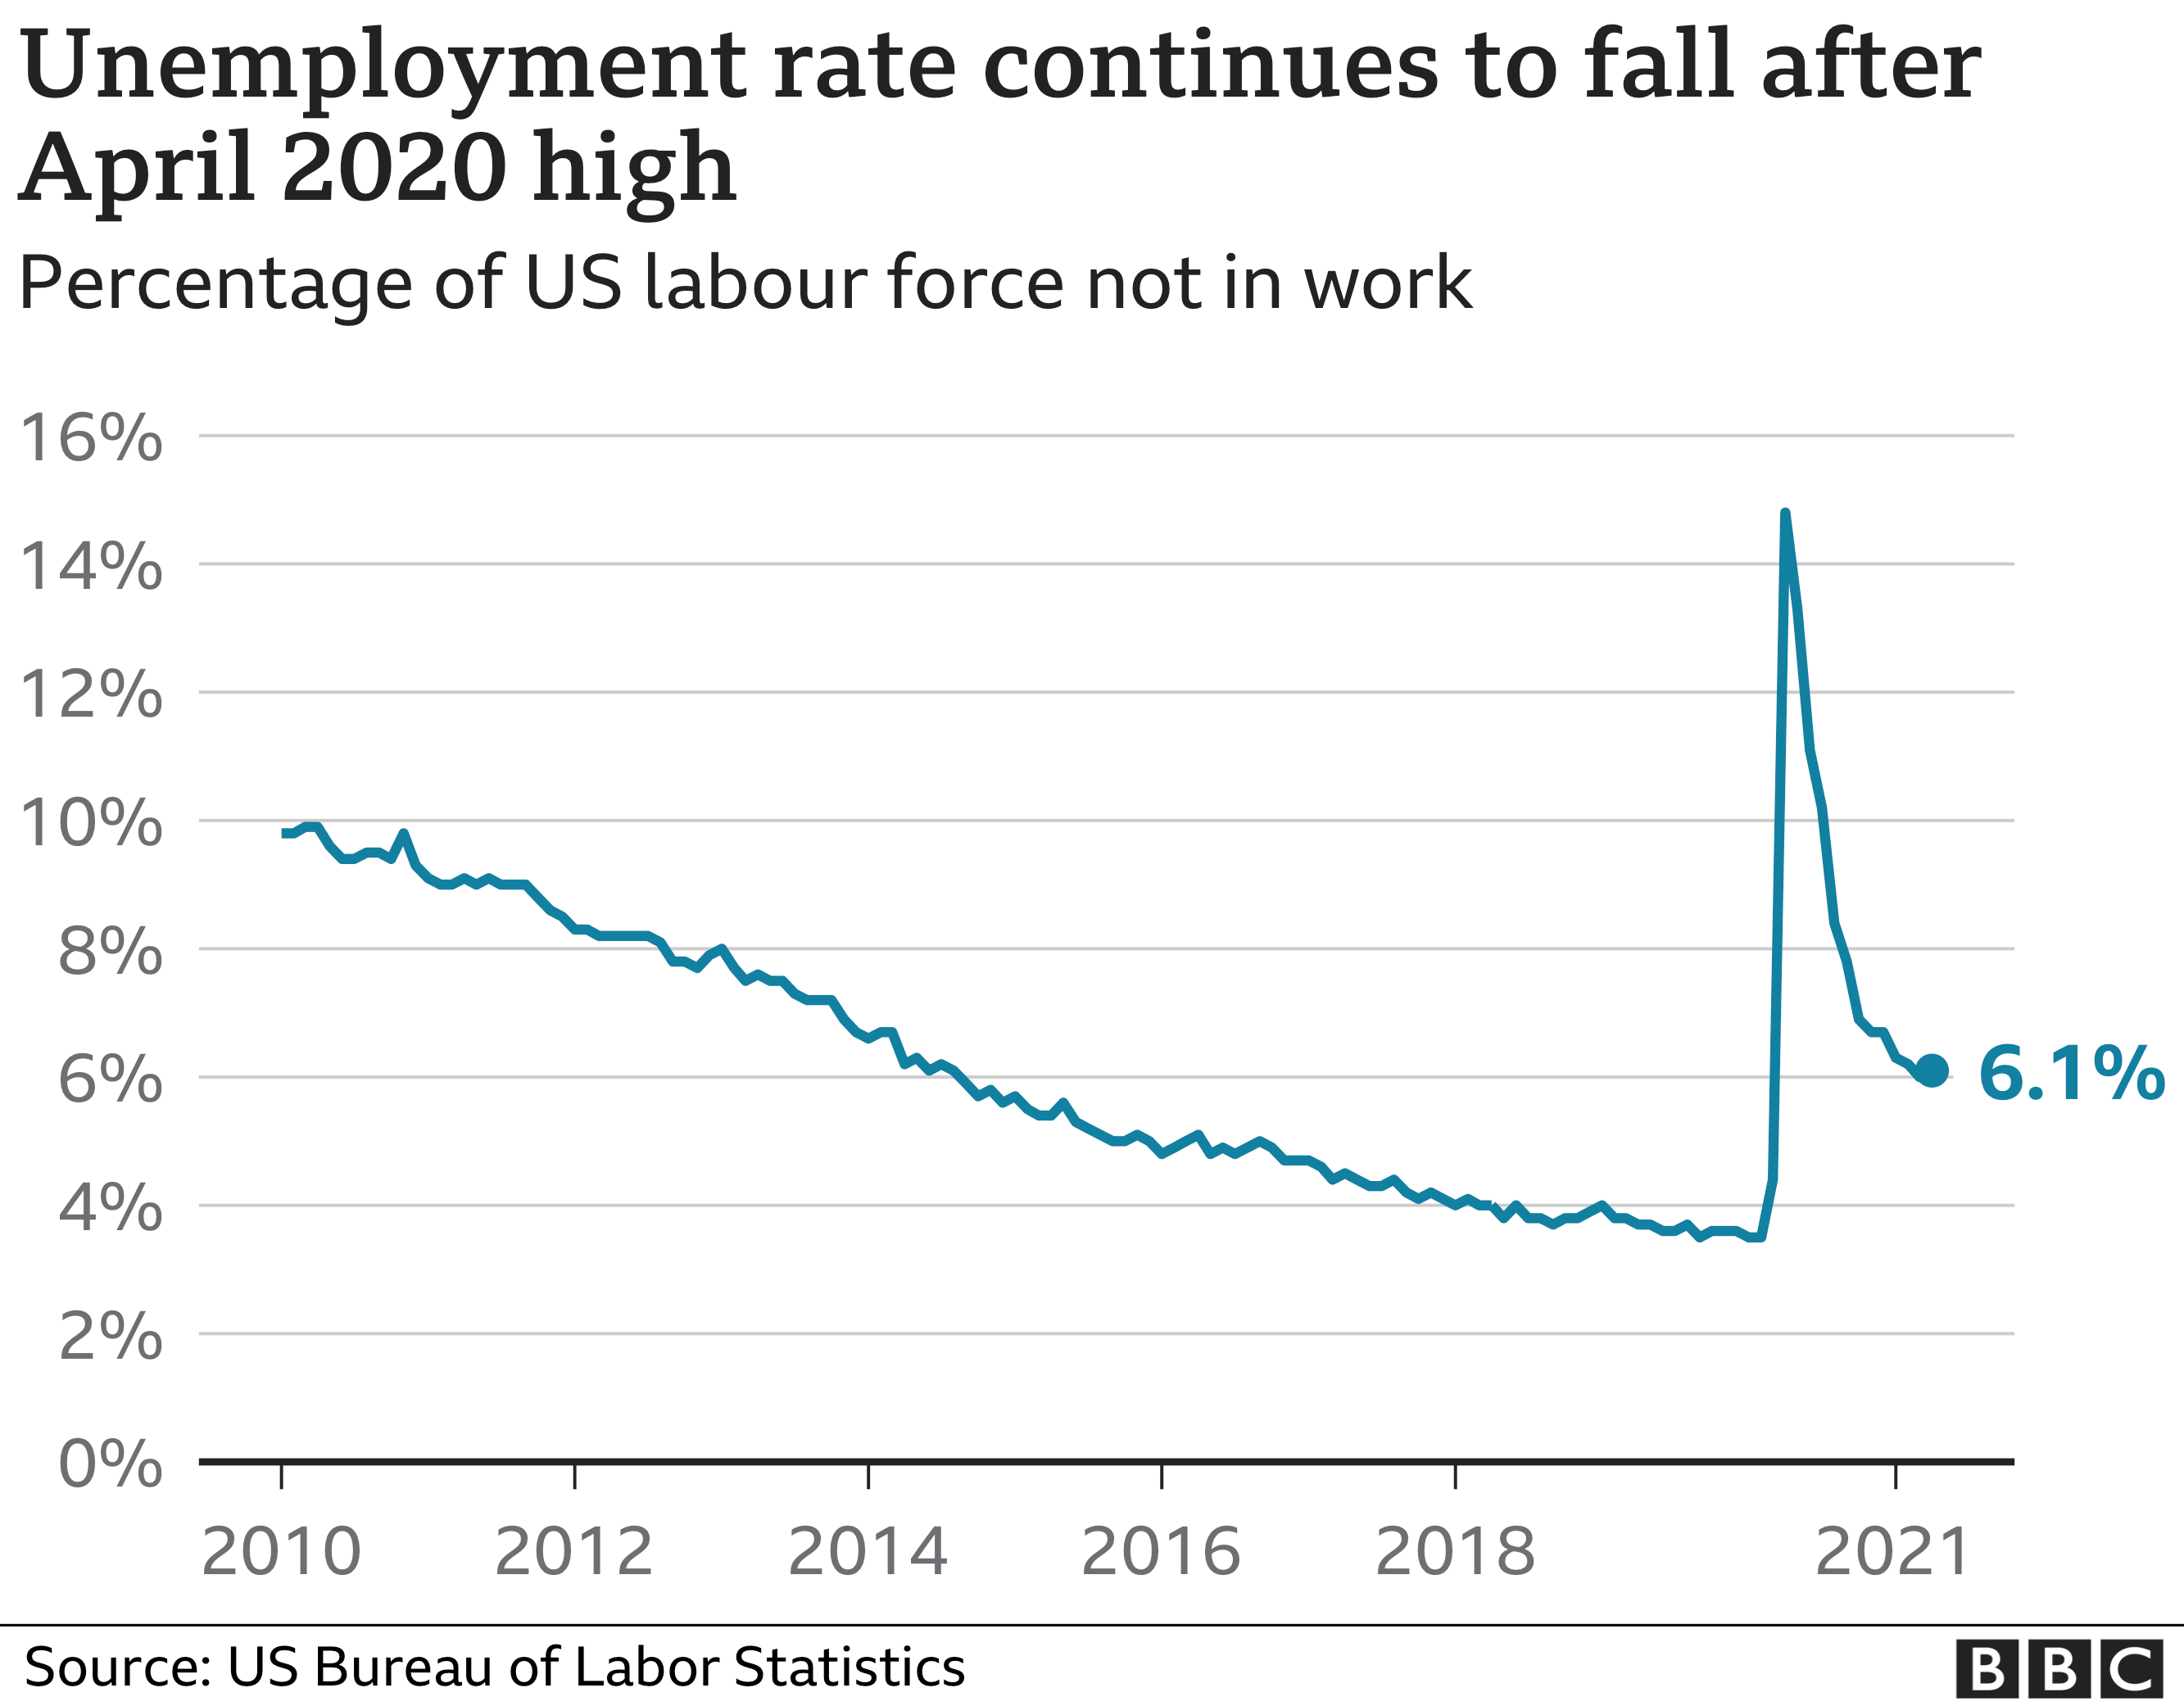 Unemployment rate continues to fall after April 2020 high